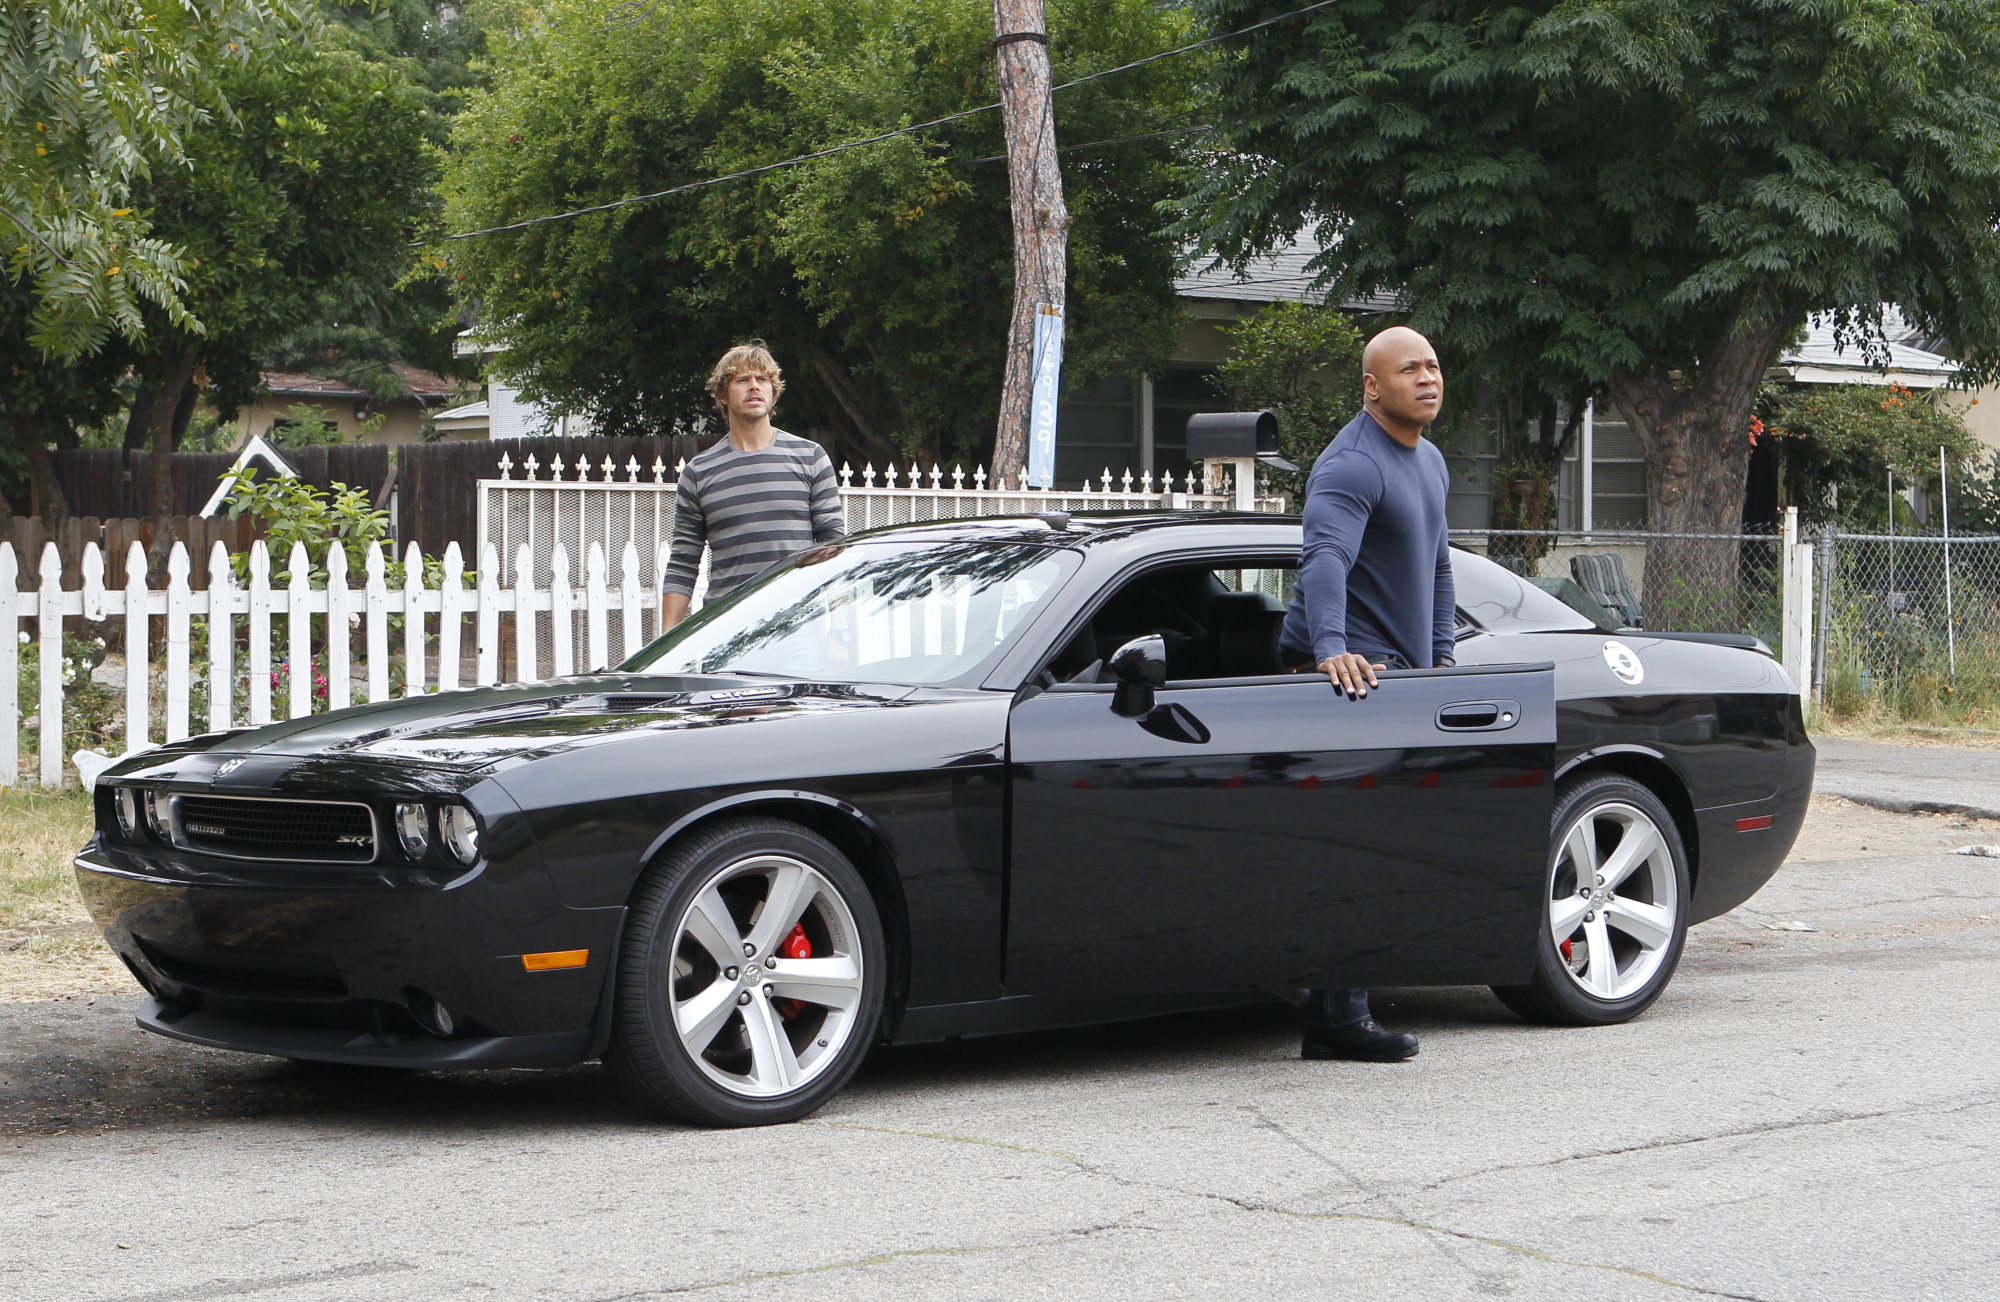 Sam and Deeks, Unlikely Partners, Arrive on Scene